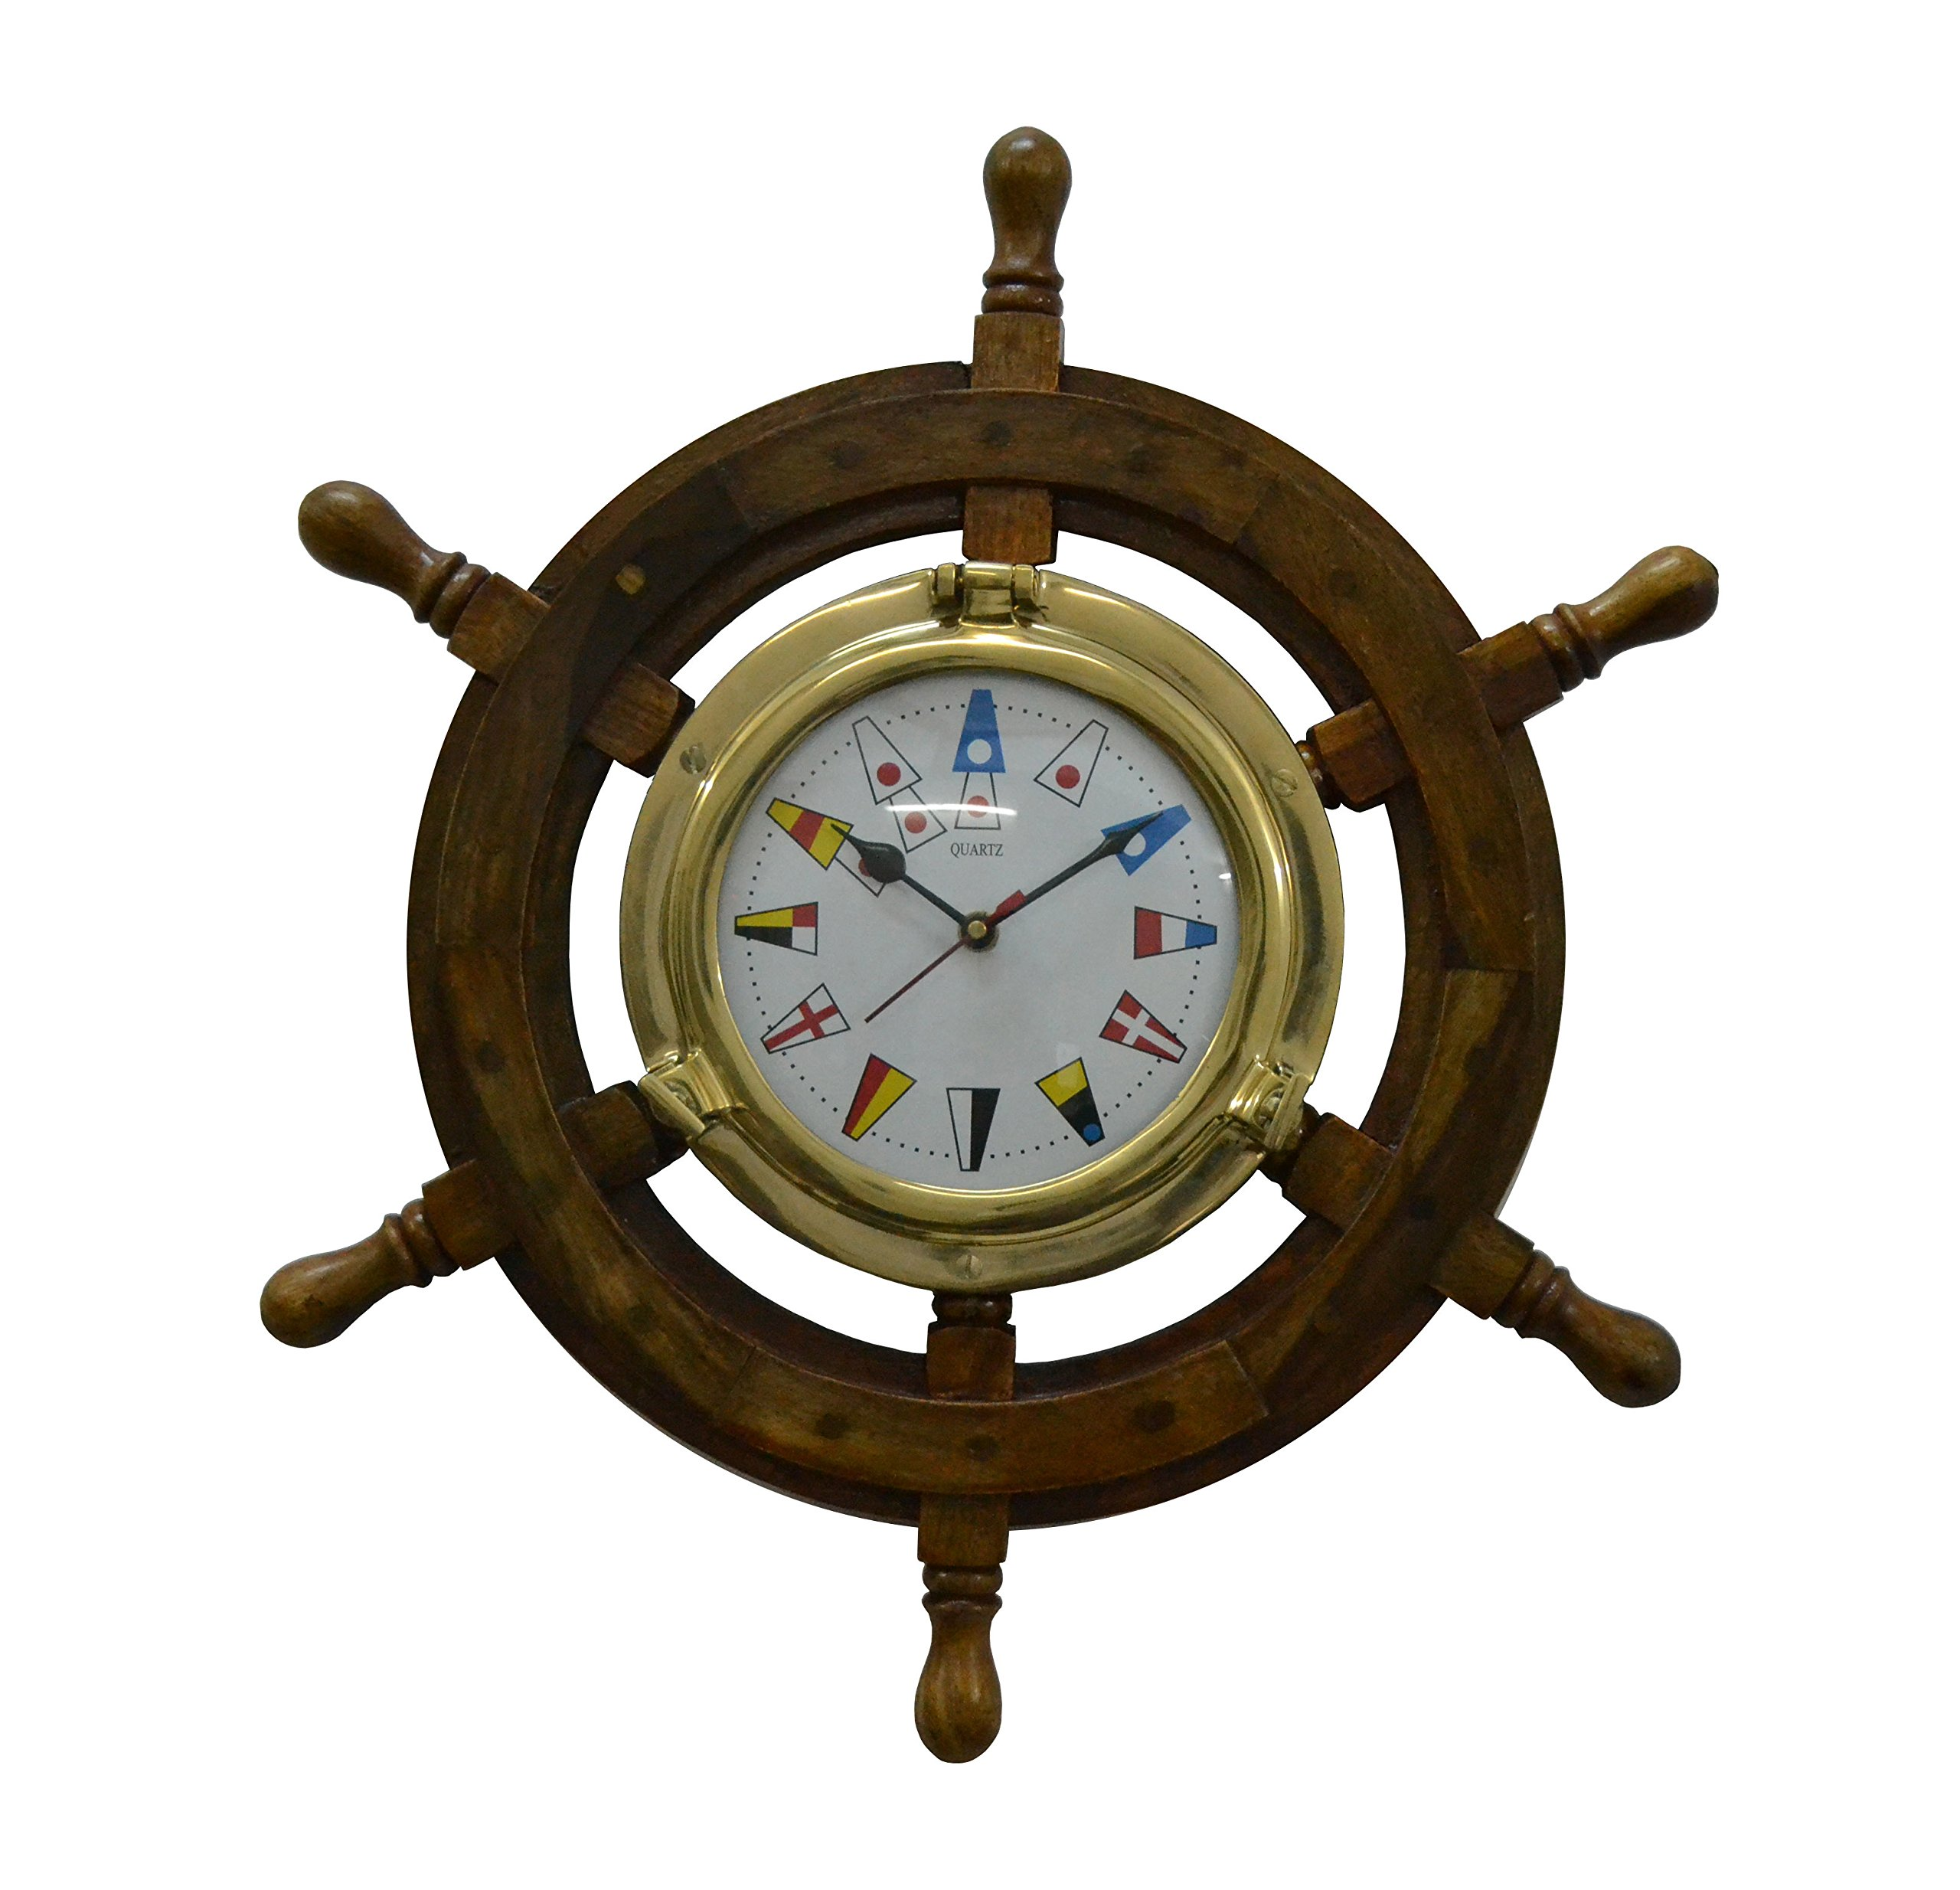 Brass Nautical Solid Wood Brass Ship Wheel Wall Clock Porthole Nautical Decor Shipwheel Boat DecorationWooden Nautical Shipwheel with Clock - Maritime Pirate Decor